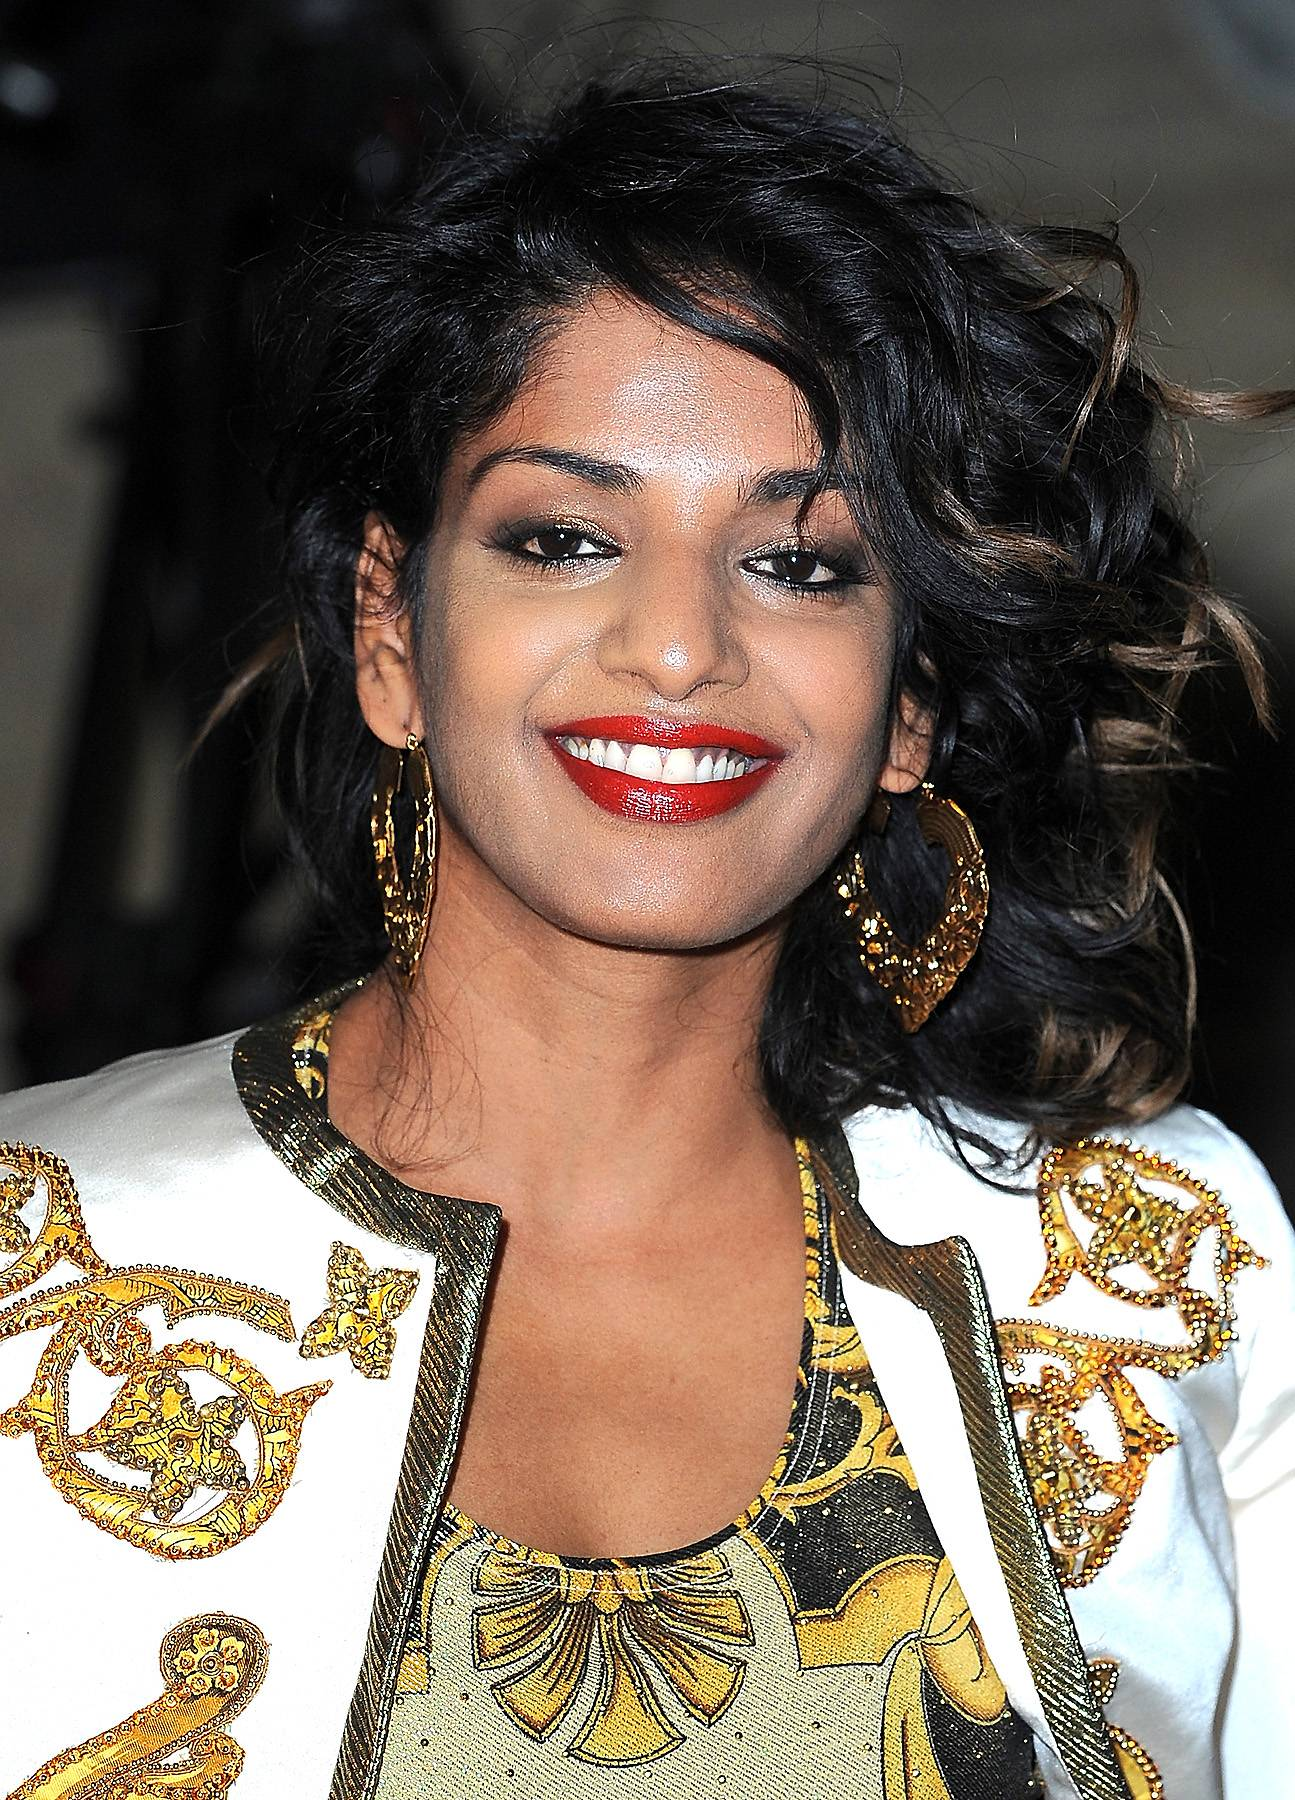 """M.I.A. vs. Interscope - M.I.A.raged against the machine in August 2013. The """"Bad Girls"""" singer threatened to leak her Matangi album after a long standingsquabblewith Interscope. It was the first album she released on the label, eventually hitting shelves Nov. 5, a year after its initial scheduled date.(Photo: Pascal Le Segretain/Getty Images)"""